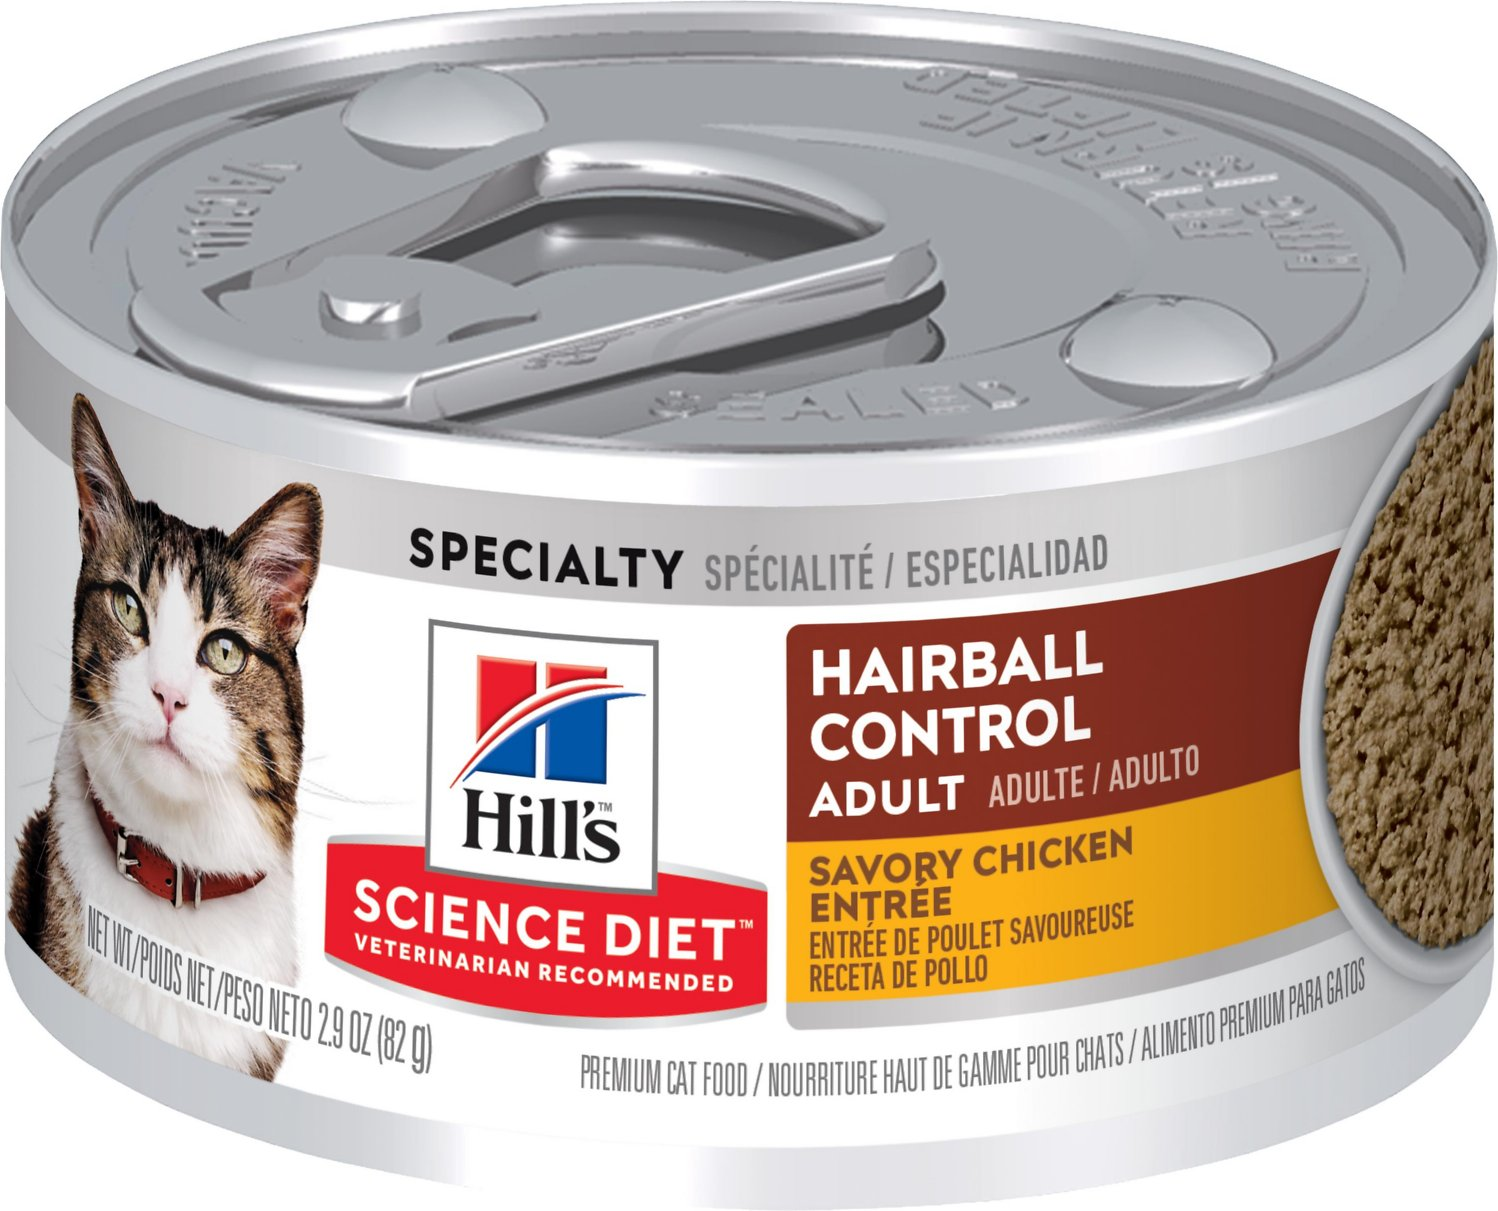 Hill's Science Diet Adult Hairball Control Savory Chicken Entree Canned Cat Food, 5.5-oz